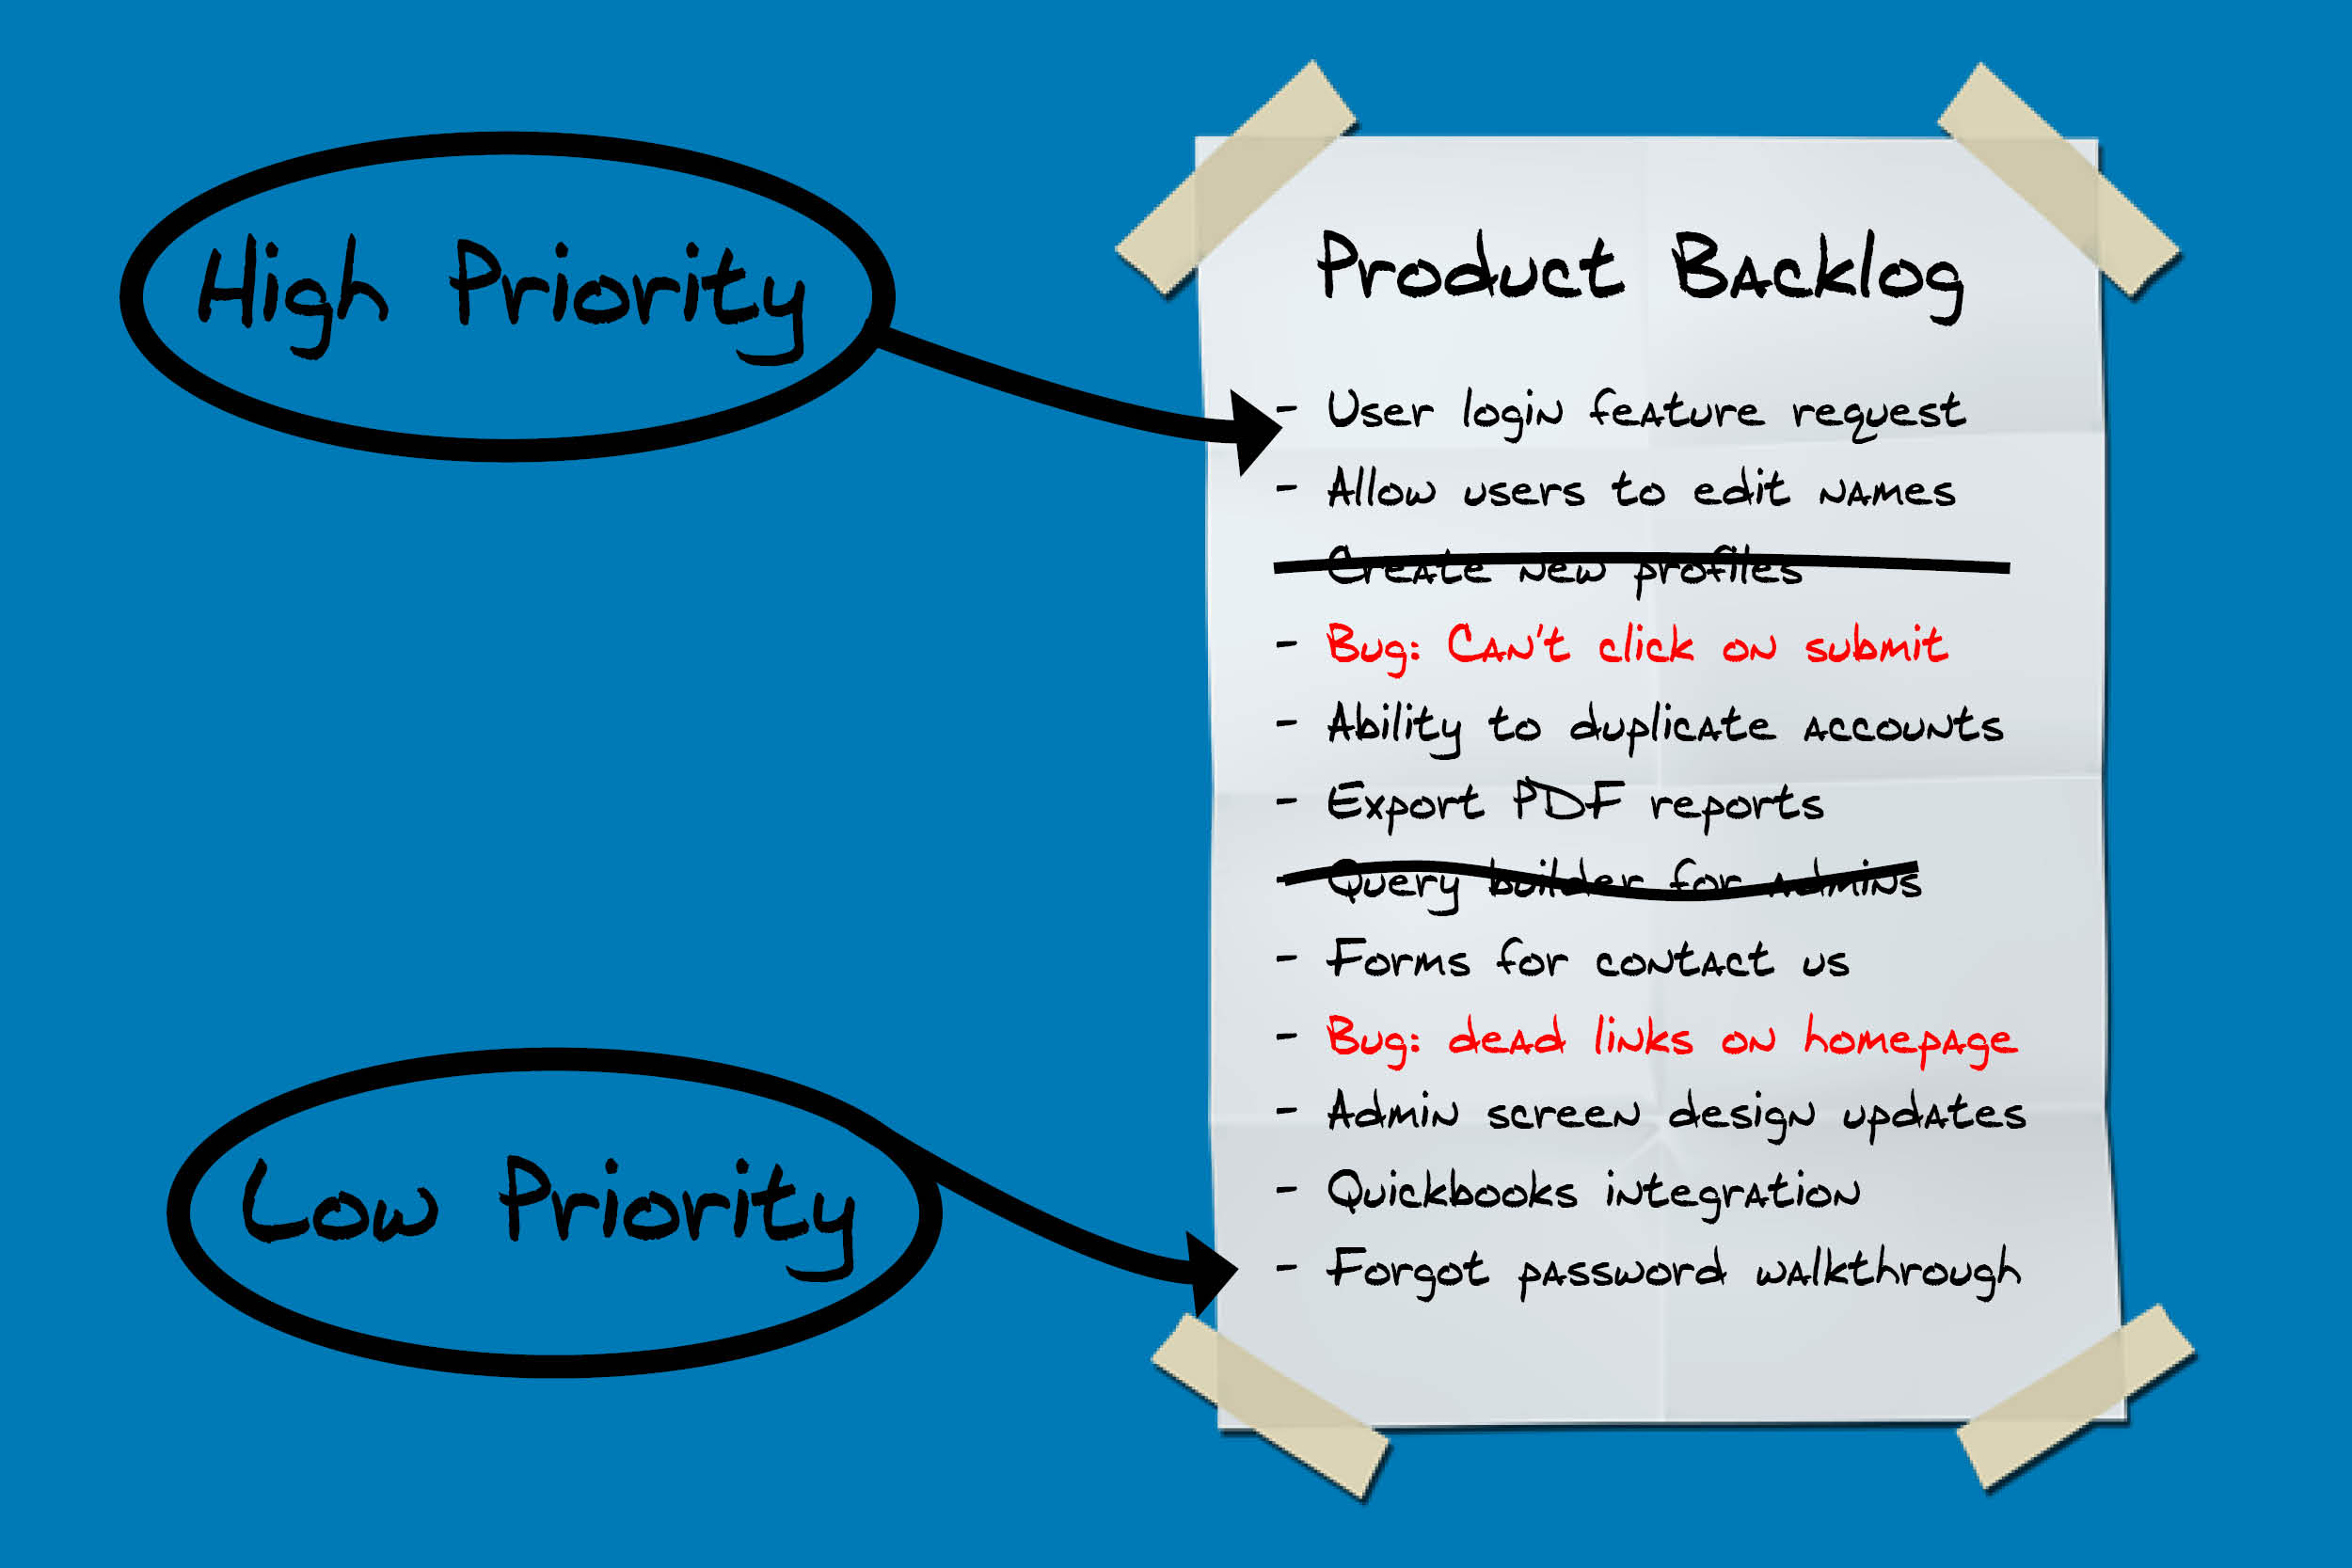 check the post:The Product Backlog for a description of the image